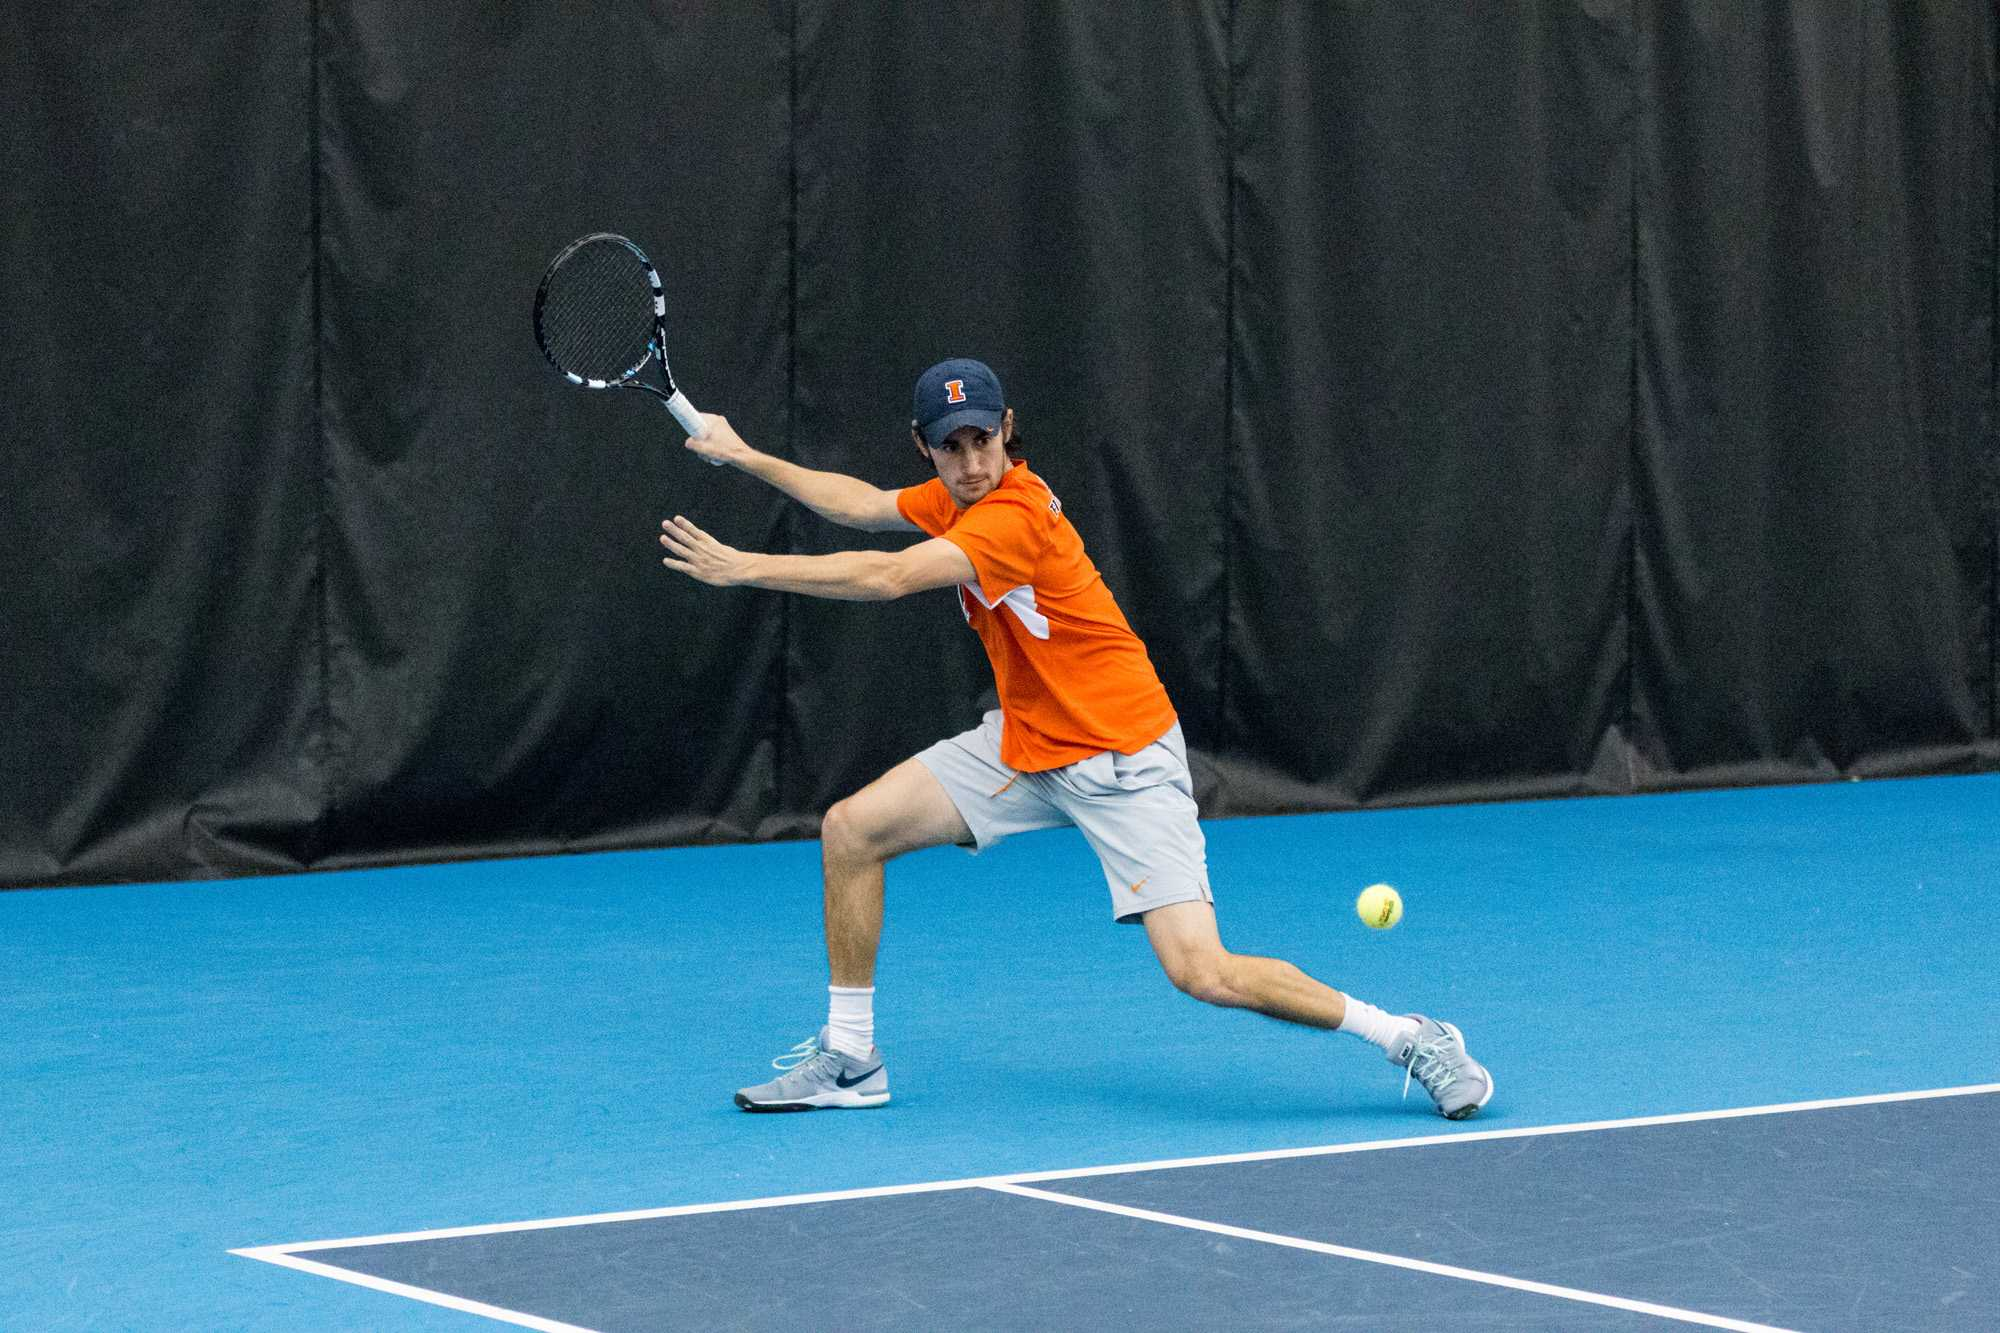 Illinois' Alex Jesse lines up the ball during the match against Notre Dame at the Atkins Tennis Center on Friday, February 5. The Illini won 5-2.